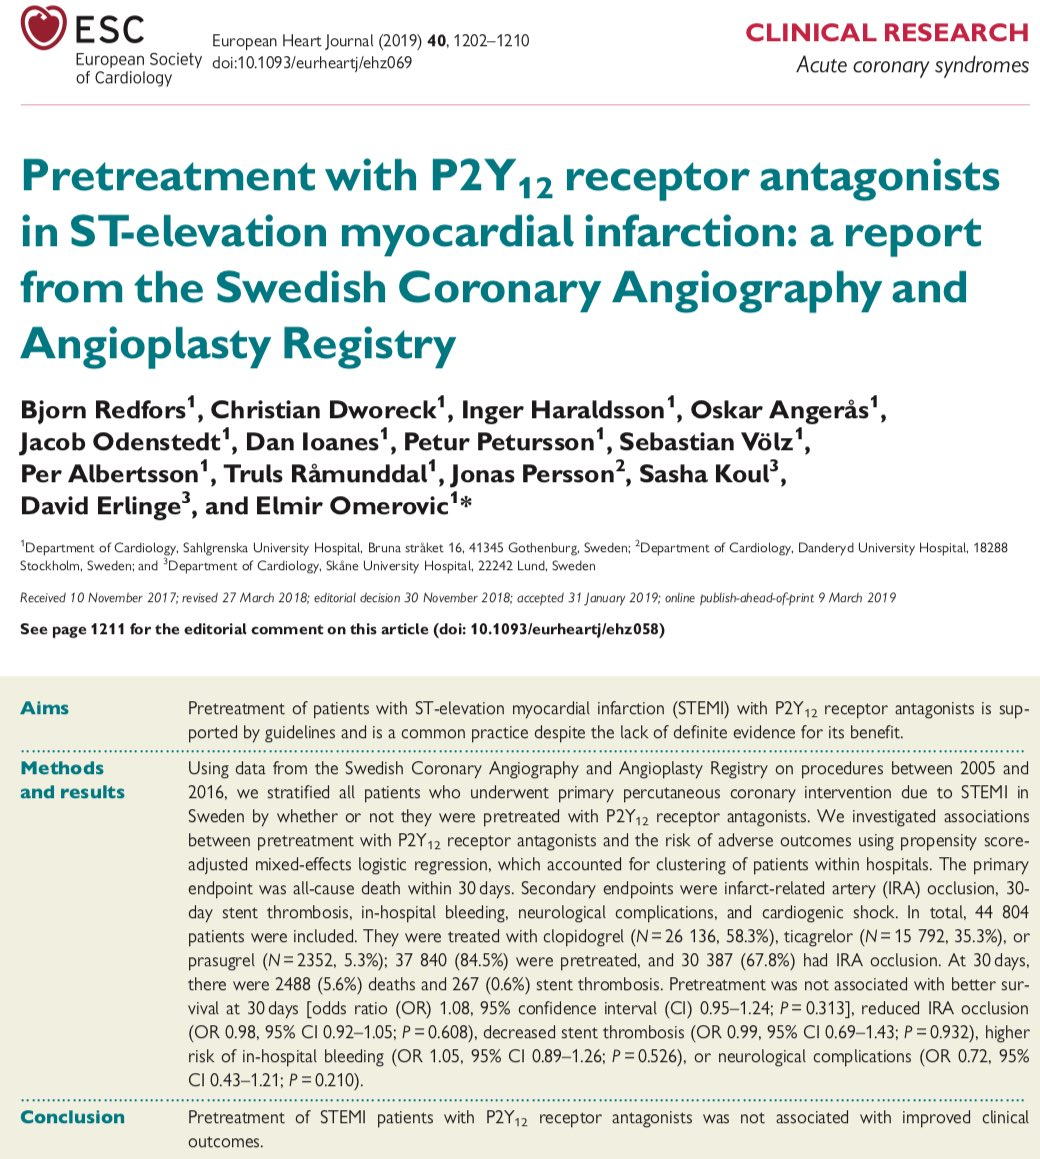 Large study (non-rand) today suggesting pre-loading oral P2Y12 inhibitors in STEMI is not effective. They all work too slow to be active during primary PCI (most adverse events are periprocedural), even if crushed. IV cangrelor overcomes this, but lacking definitive RCT data.